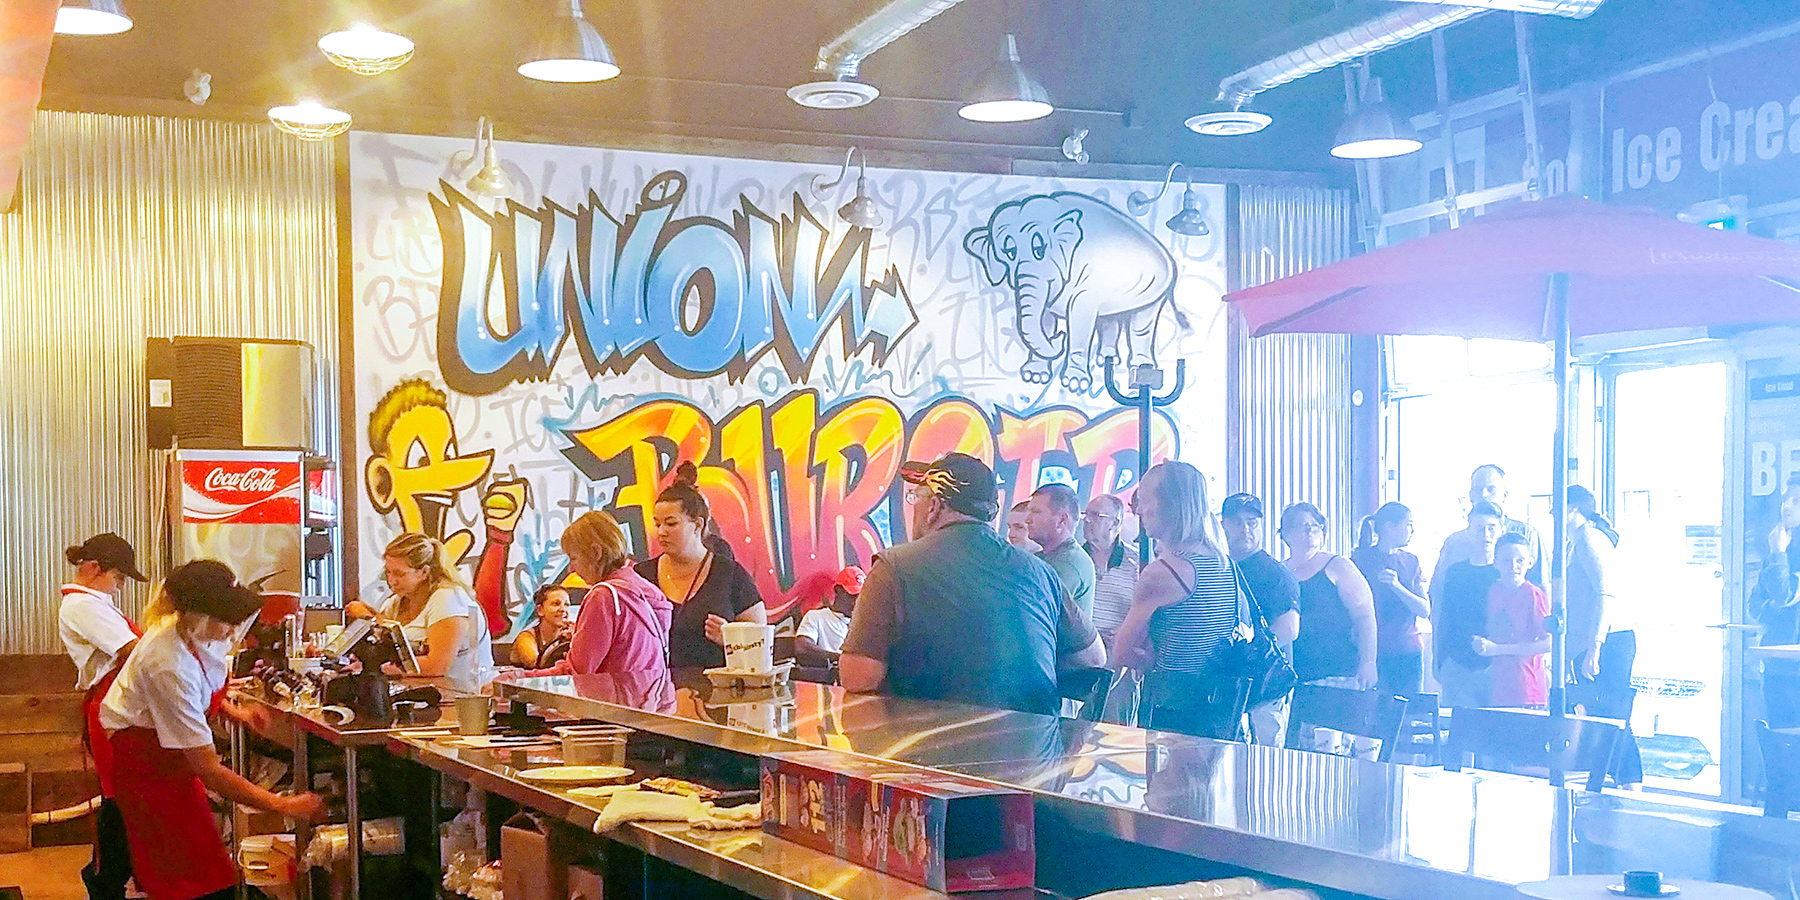 union-burger-st-thomas-franchise-own-business